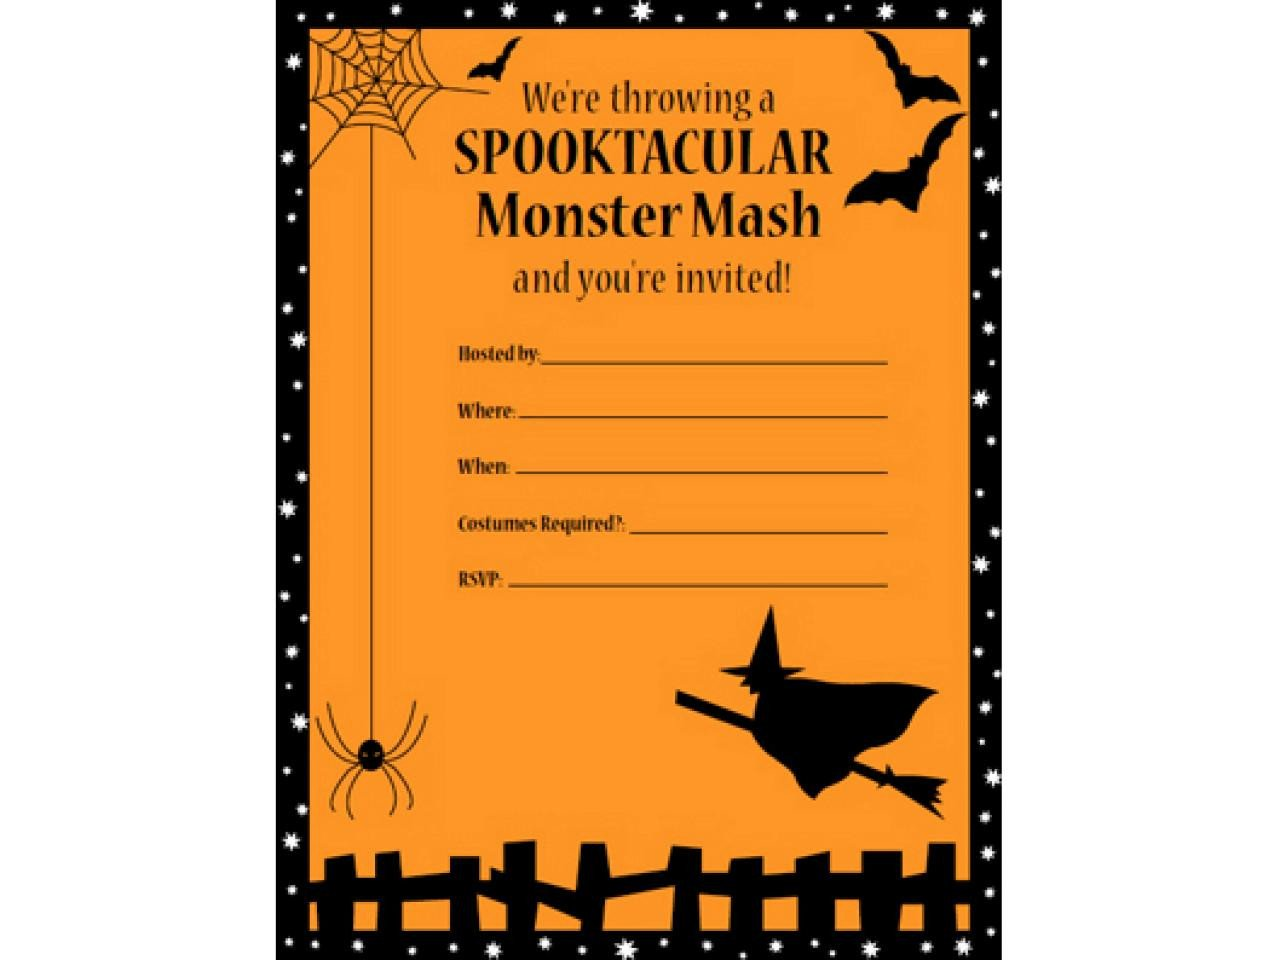 Free Halloween Invitations Templates Printable 41 Printable and Free Halloween Templates